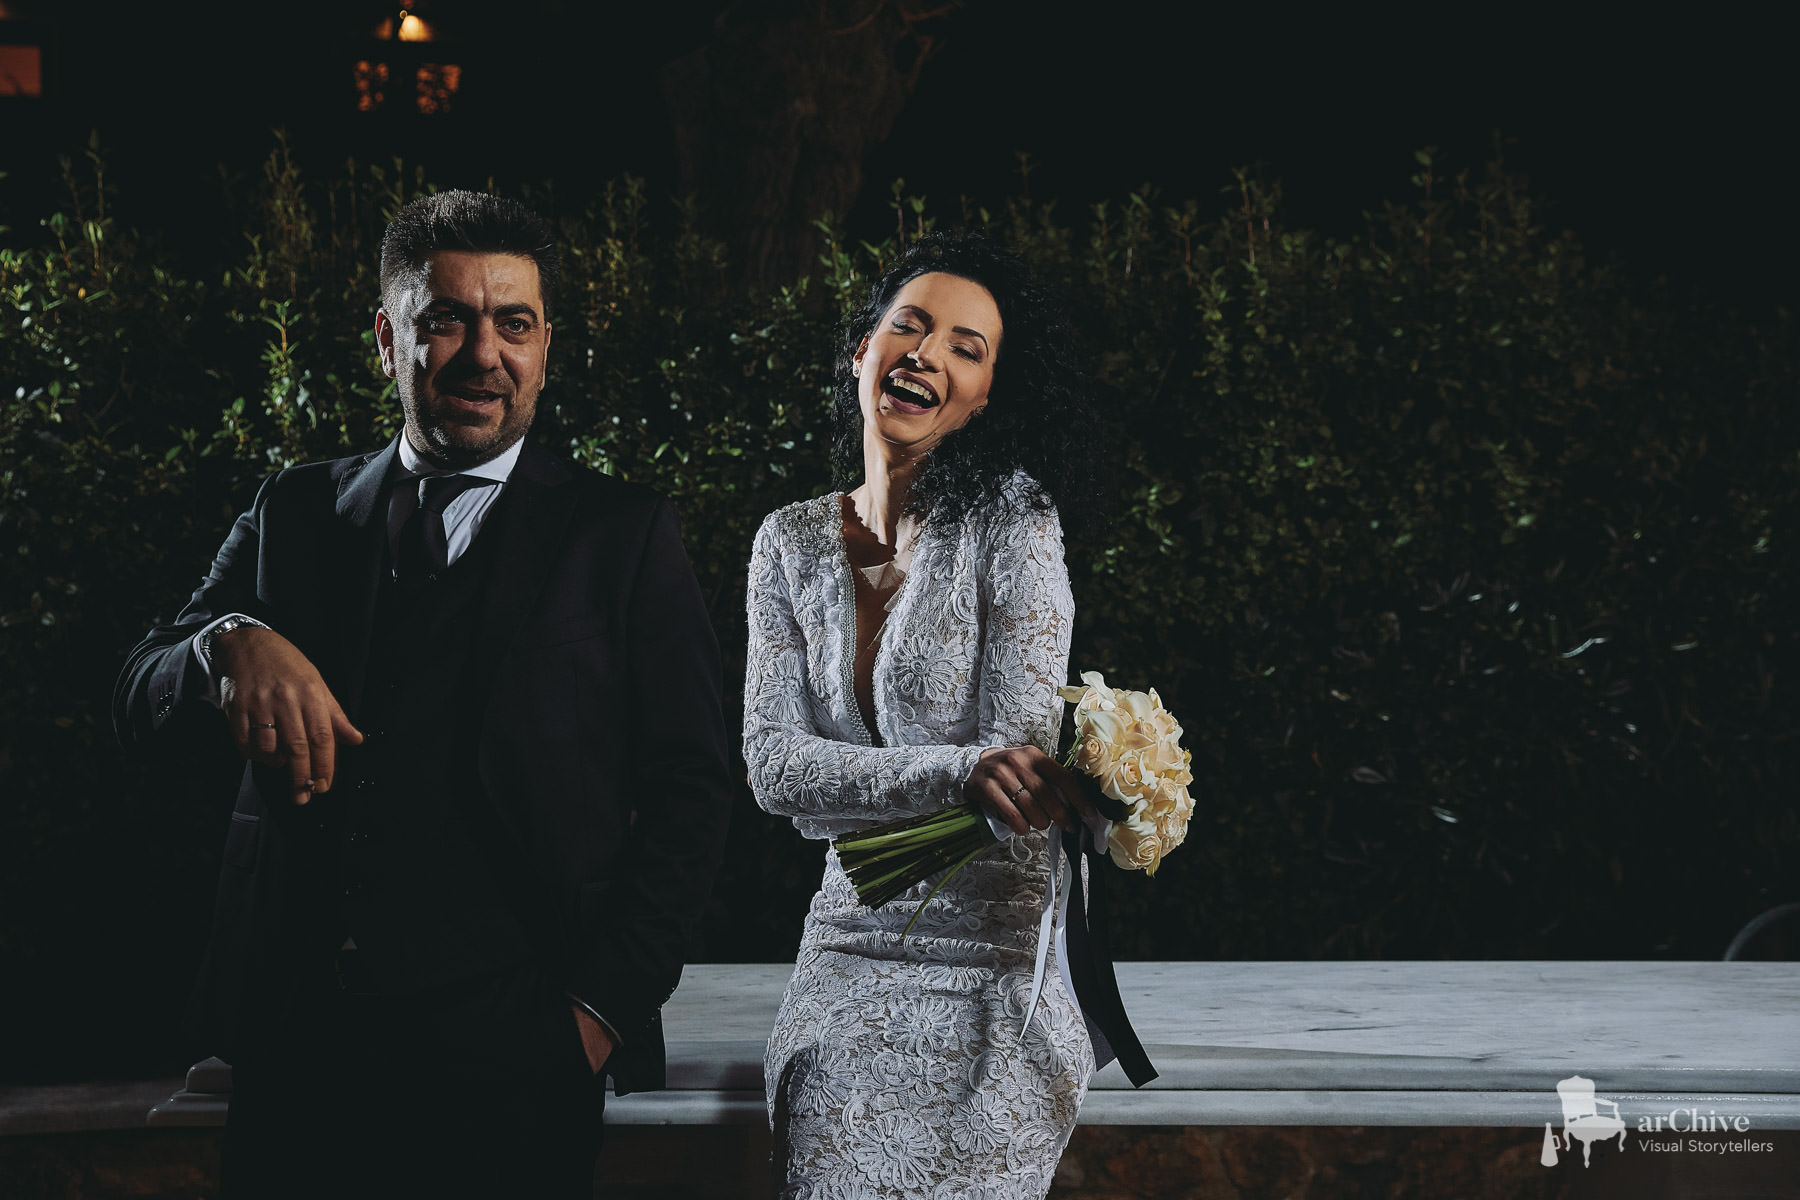 agia marina ekali wedding photographer